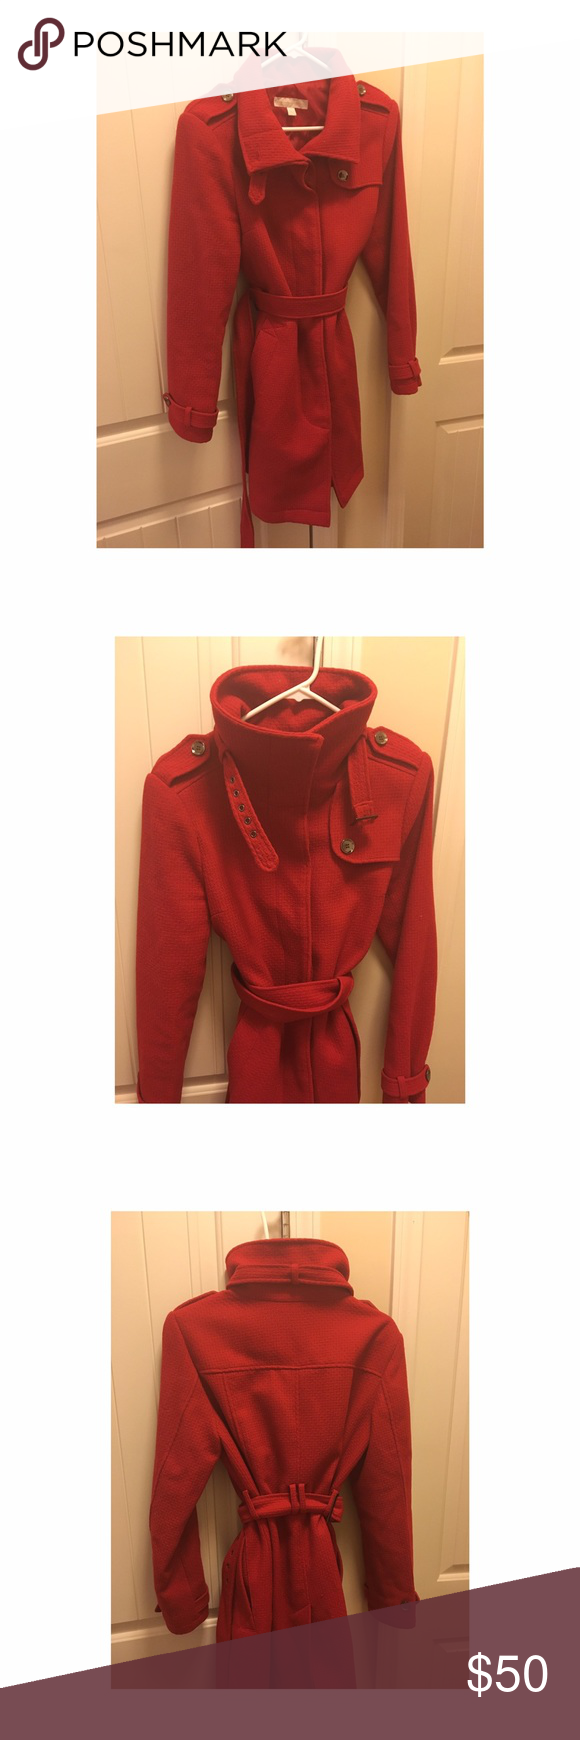 New York & Company coat This military style New York and Company coat is one of my absolute faves! It's a beautiful red color. 53% wool and 47% polyester. The lining is 100% polyester. It's a size medium and comes with a belt so can be adjusted. Absolutely no flaws. Barely worn. Recently dry cleaned as well. New York & Company Jackets & Coats Pea Coats